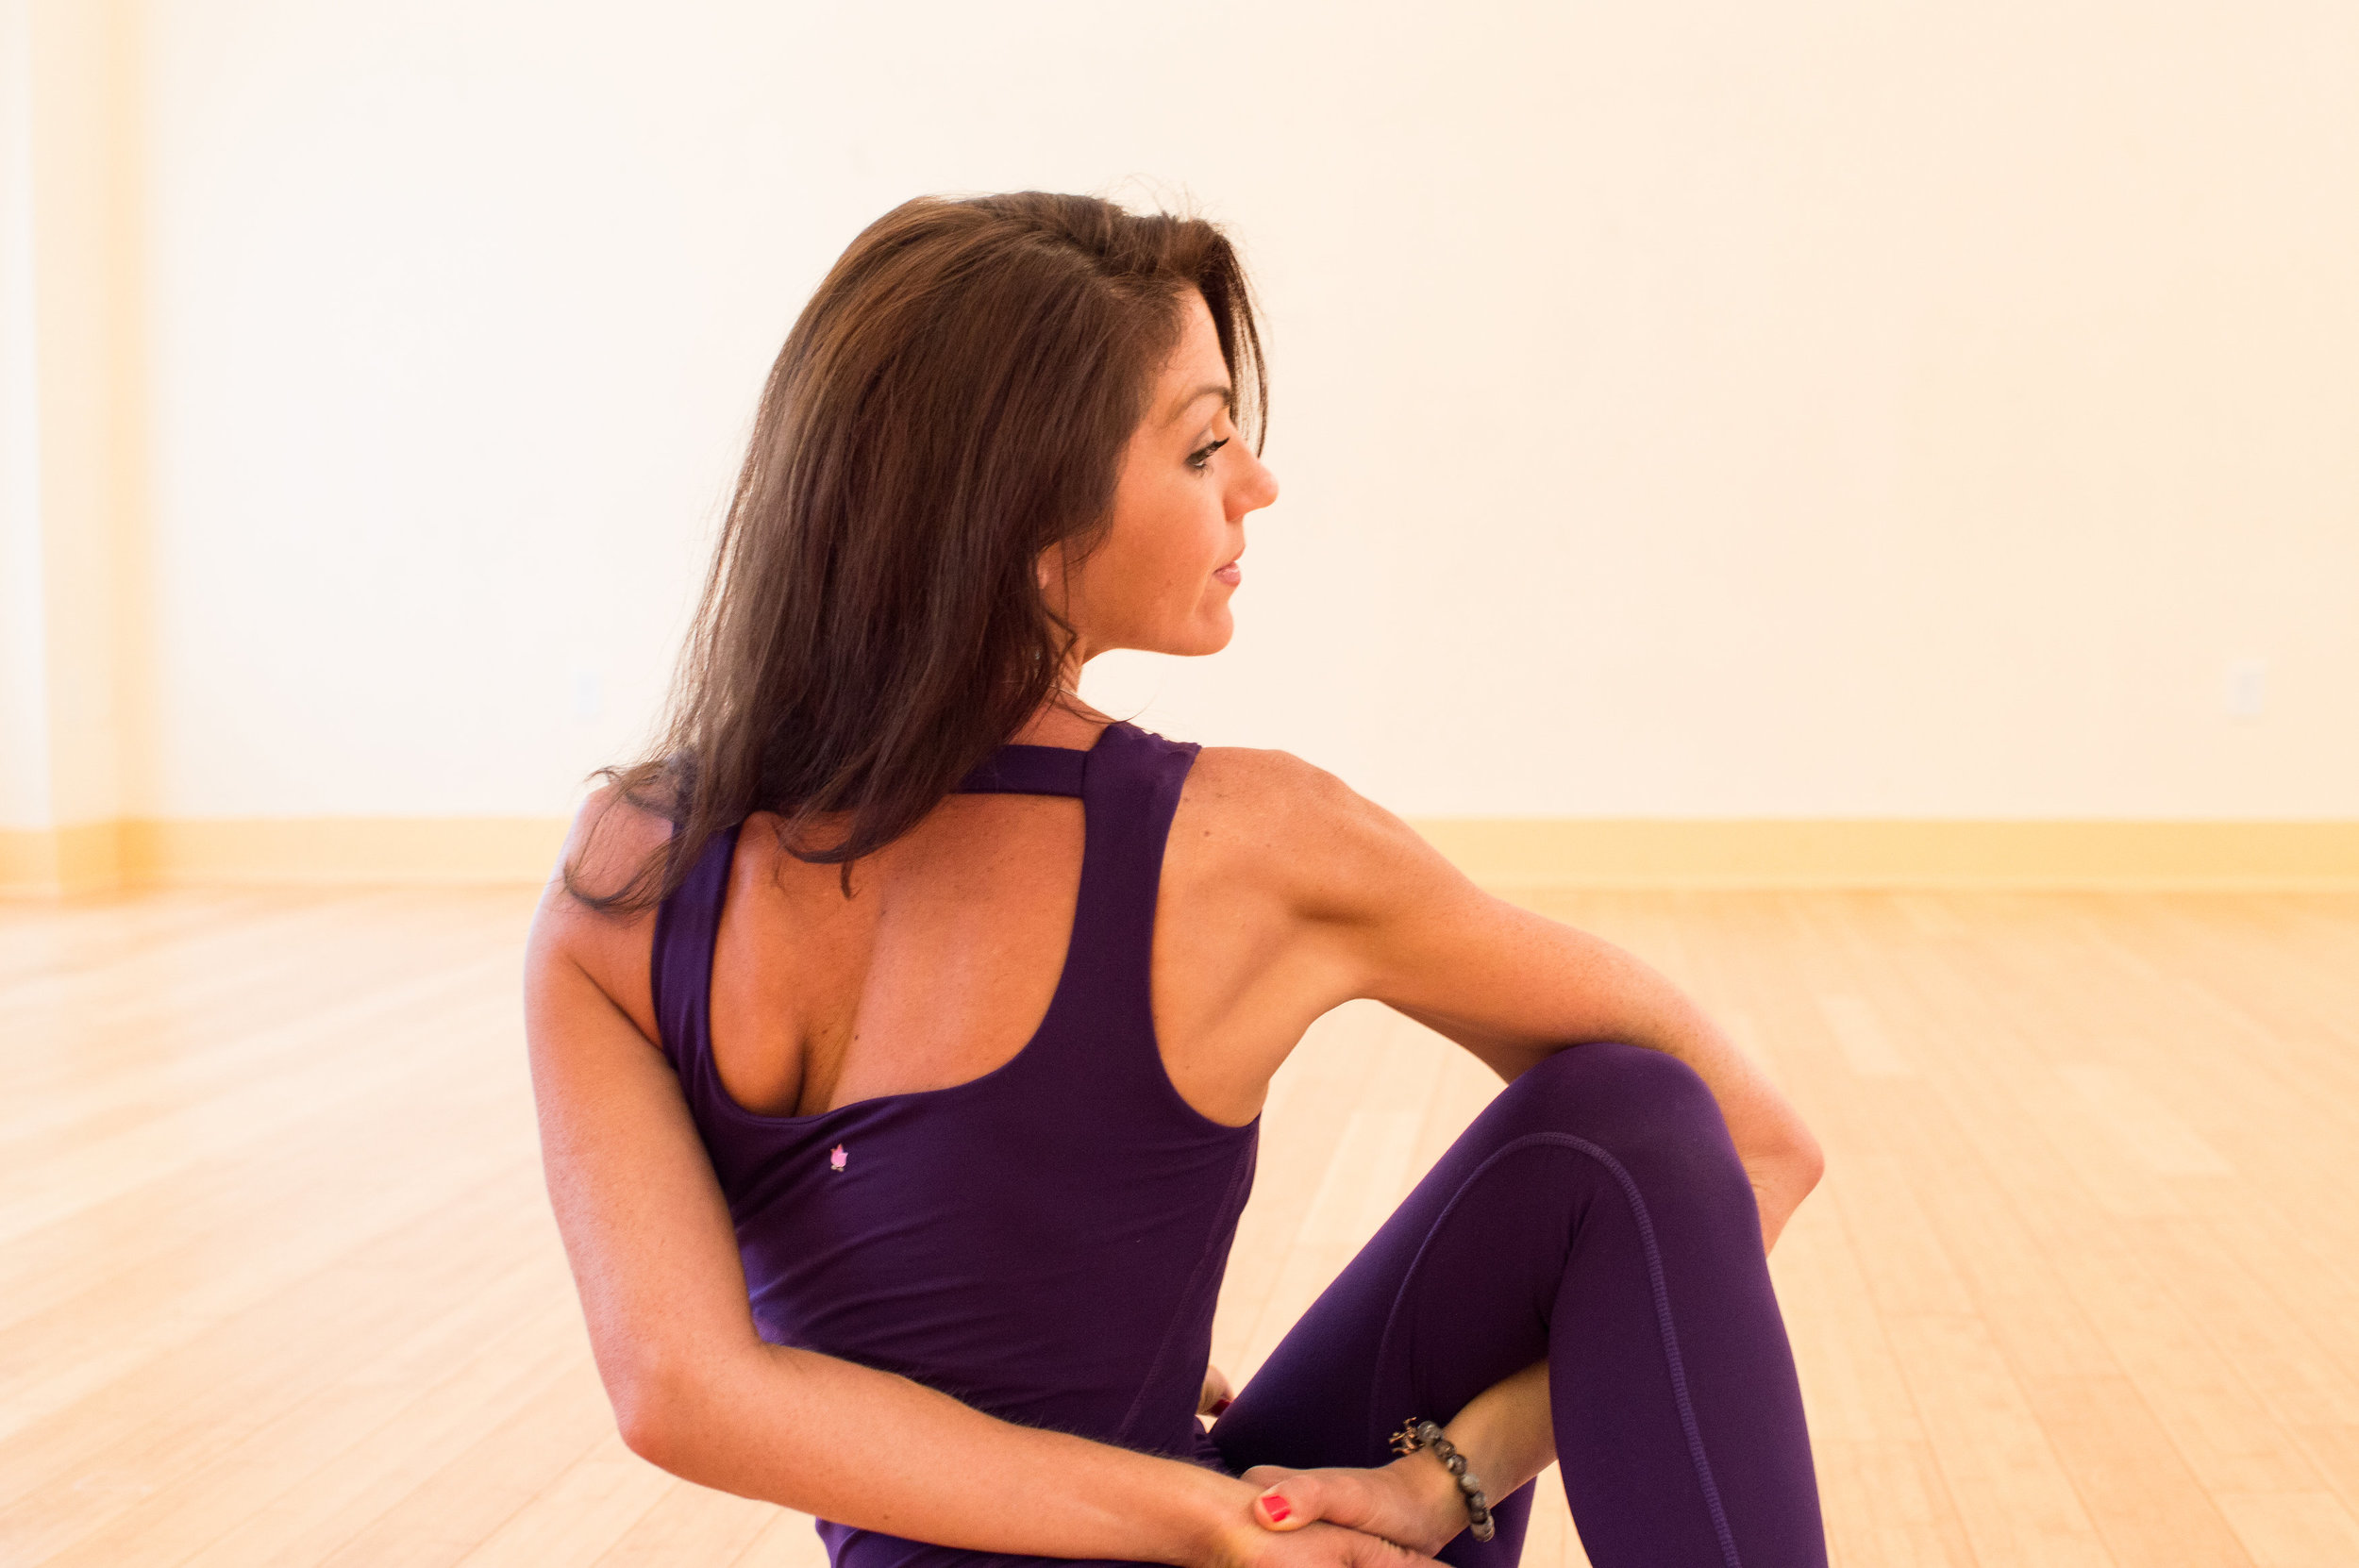 Aside from food, oils, spices and herbs, Ayurveda utilizes yoga asanas or postures to help aid in detoxifying the body and mind. Yoga poses help restore ones energy, boost organ function, amplify immunity, uplift the mind and boost moods. Your practitioner can suggest specific yoga poses for your constitution and specific needs. In addition, you can schedule a yoga private lesson. You'll receive personalized instruction, adjustments and care.